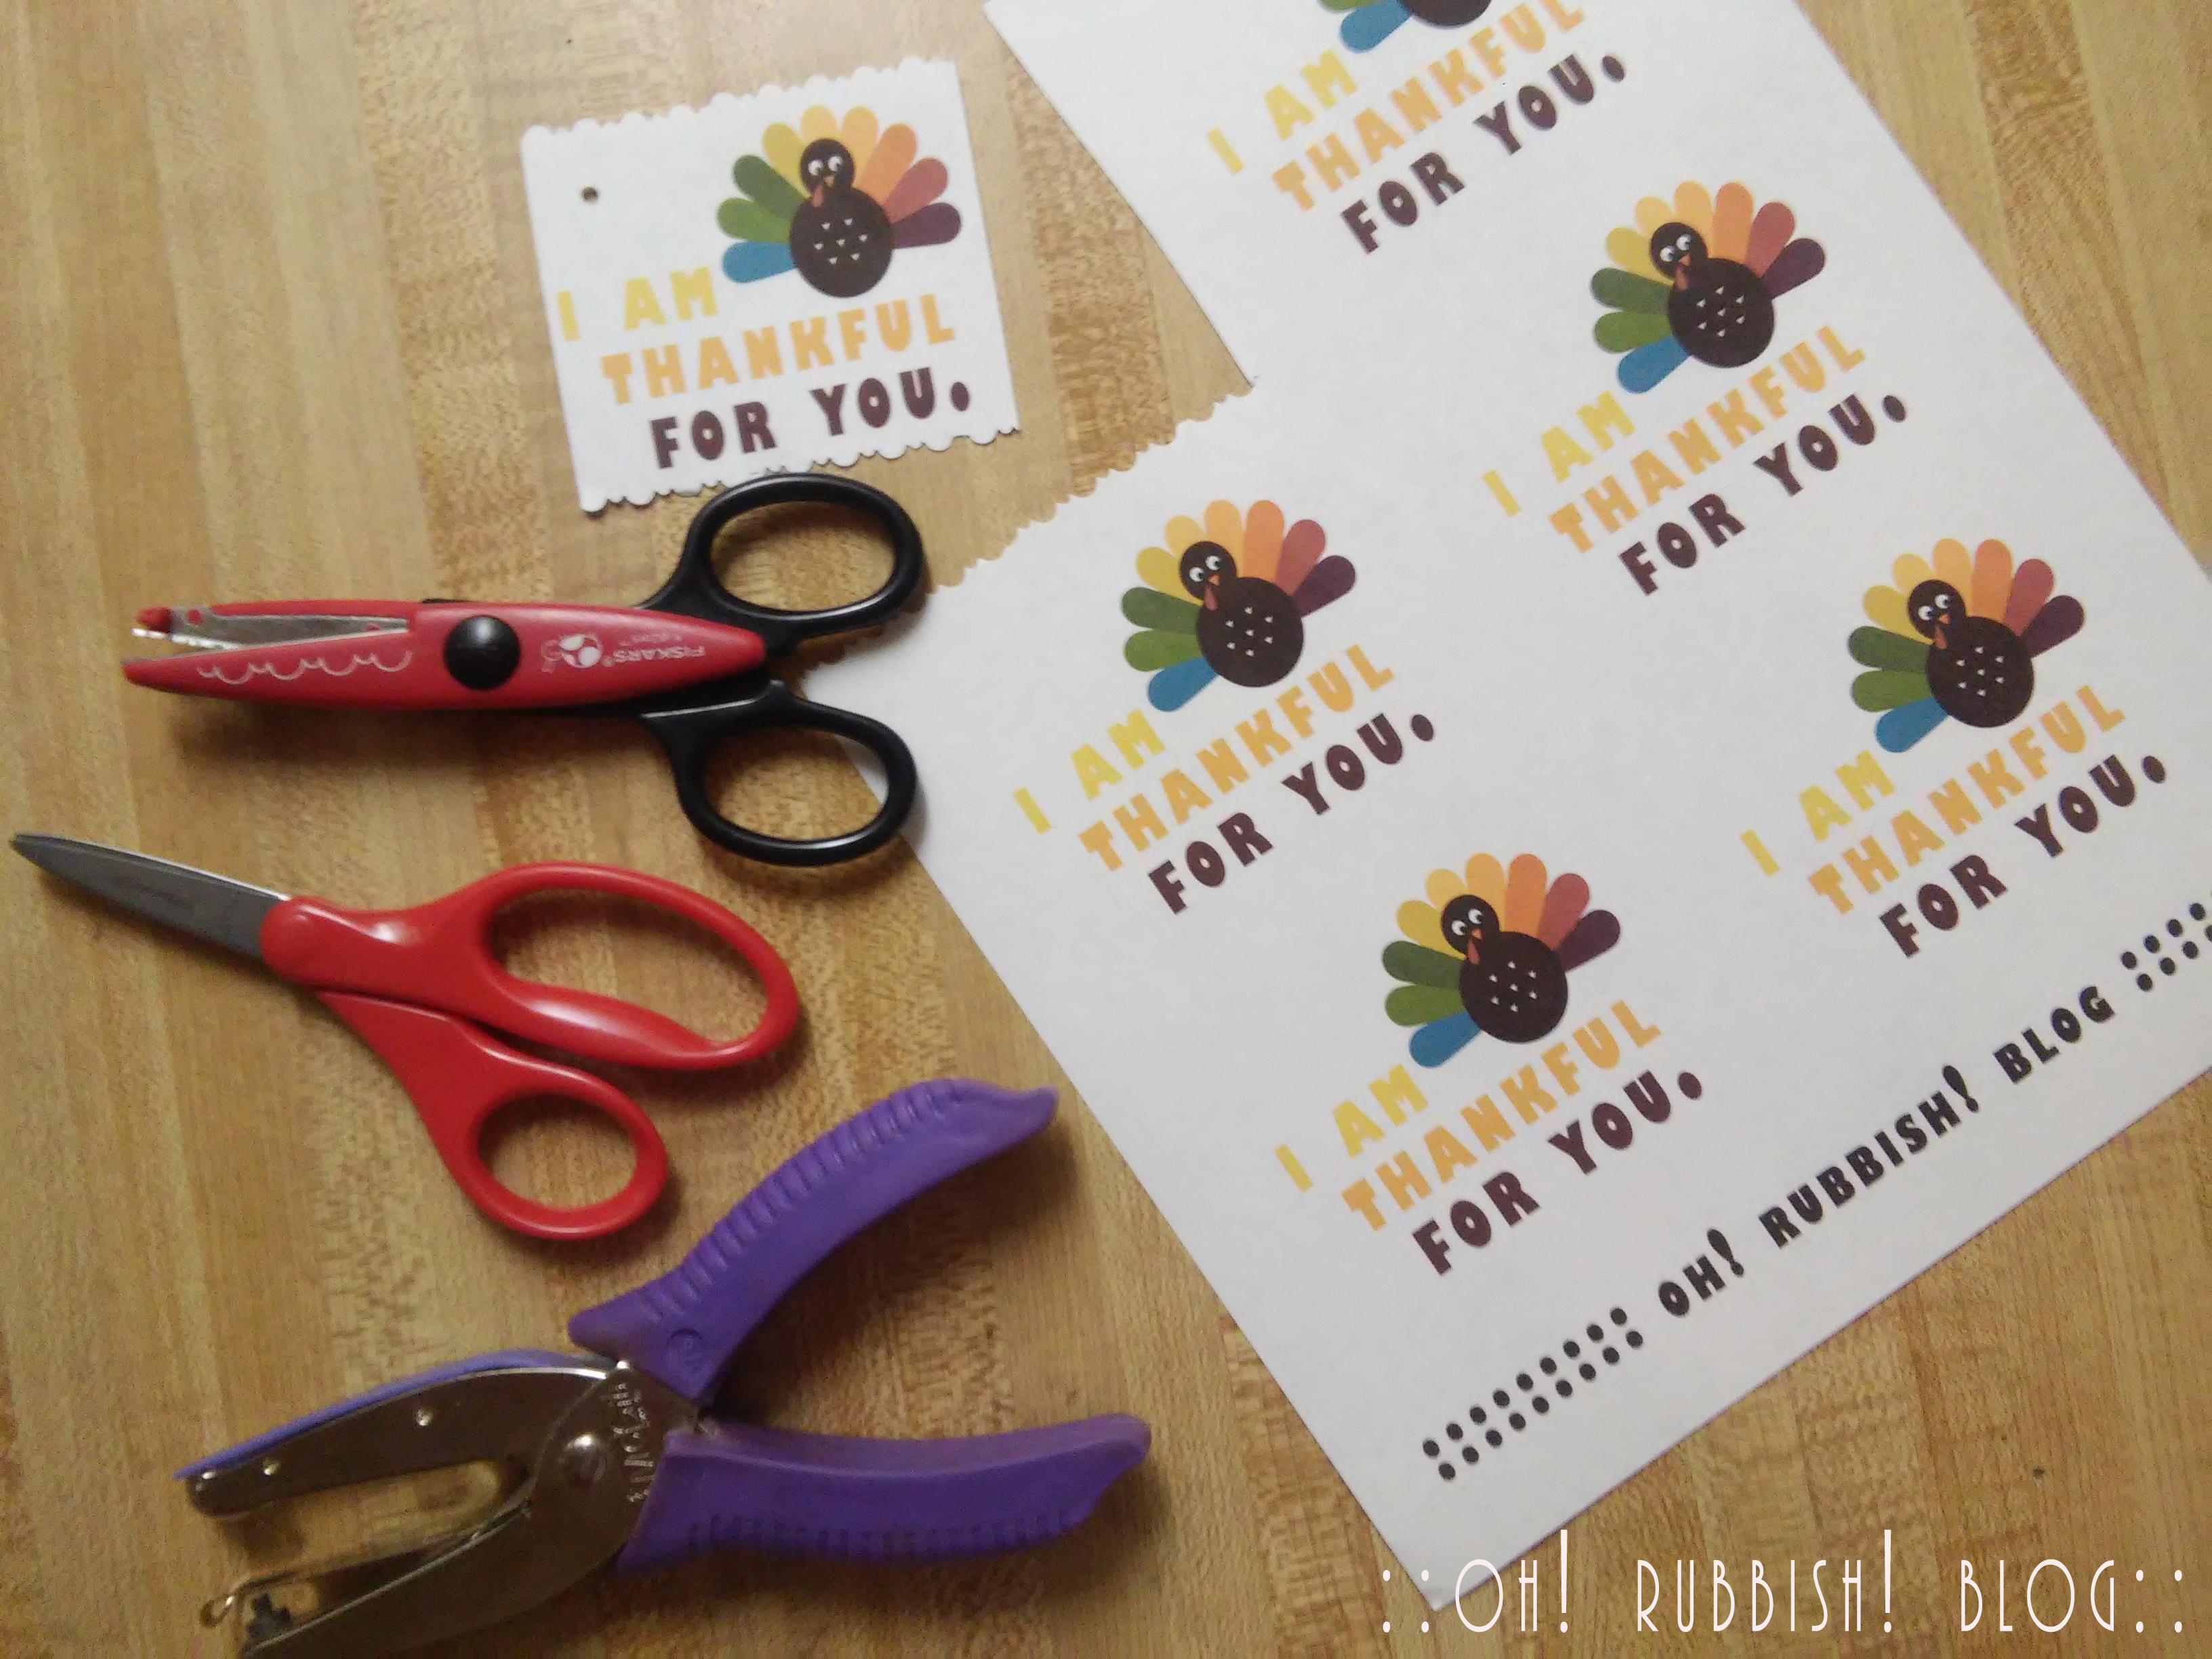 I AM THANKFUL FOR YOU : Edible Cornucopia Thanksgiving Class Favor Treats by oh rubbish blog